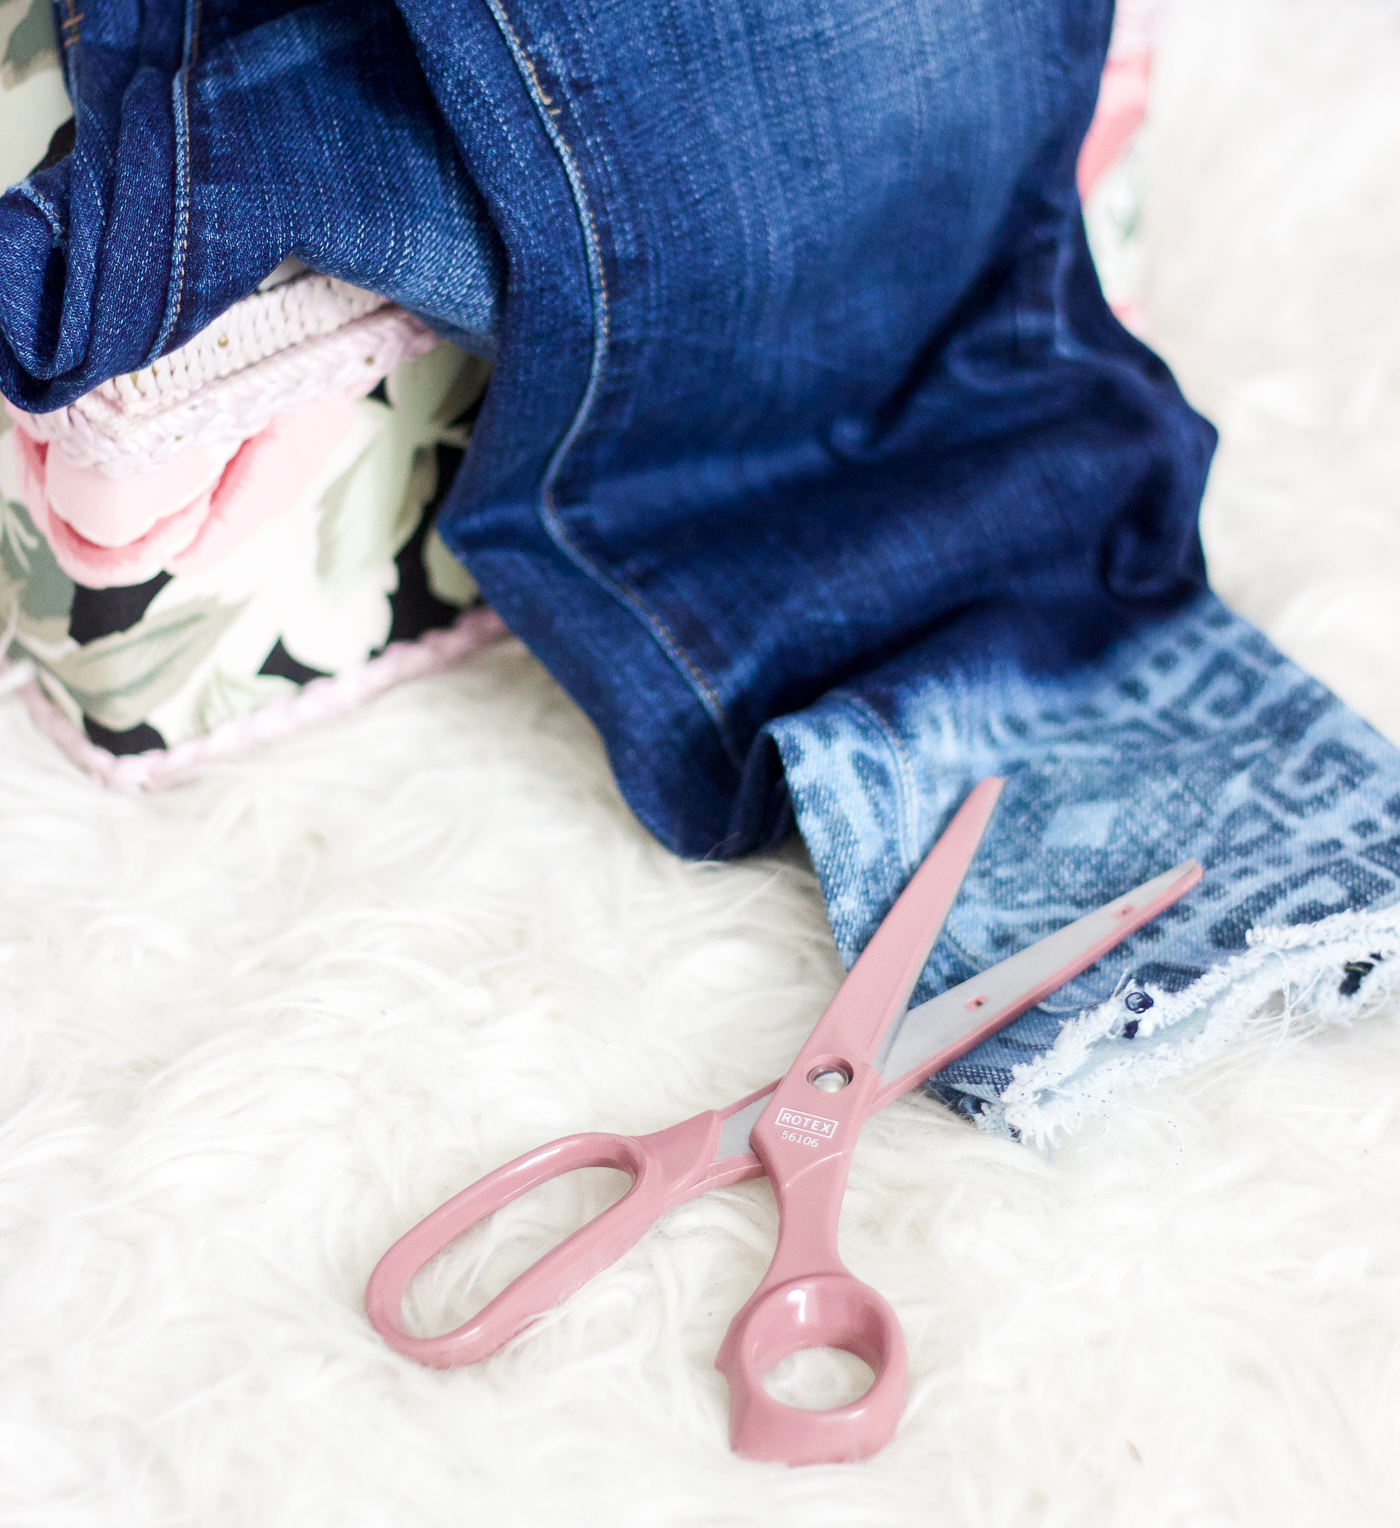 Quick and easy tutorial for how to cut your jeans into the step-hem style